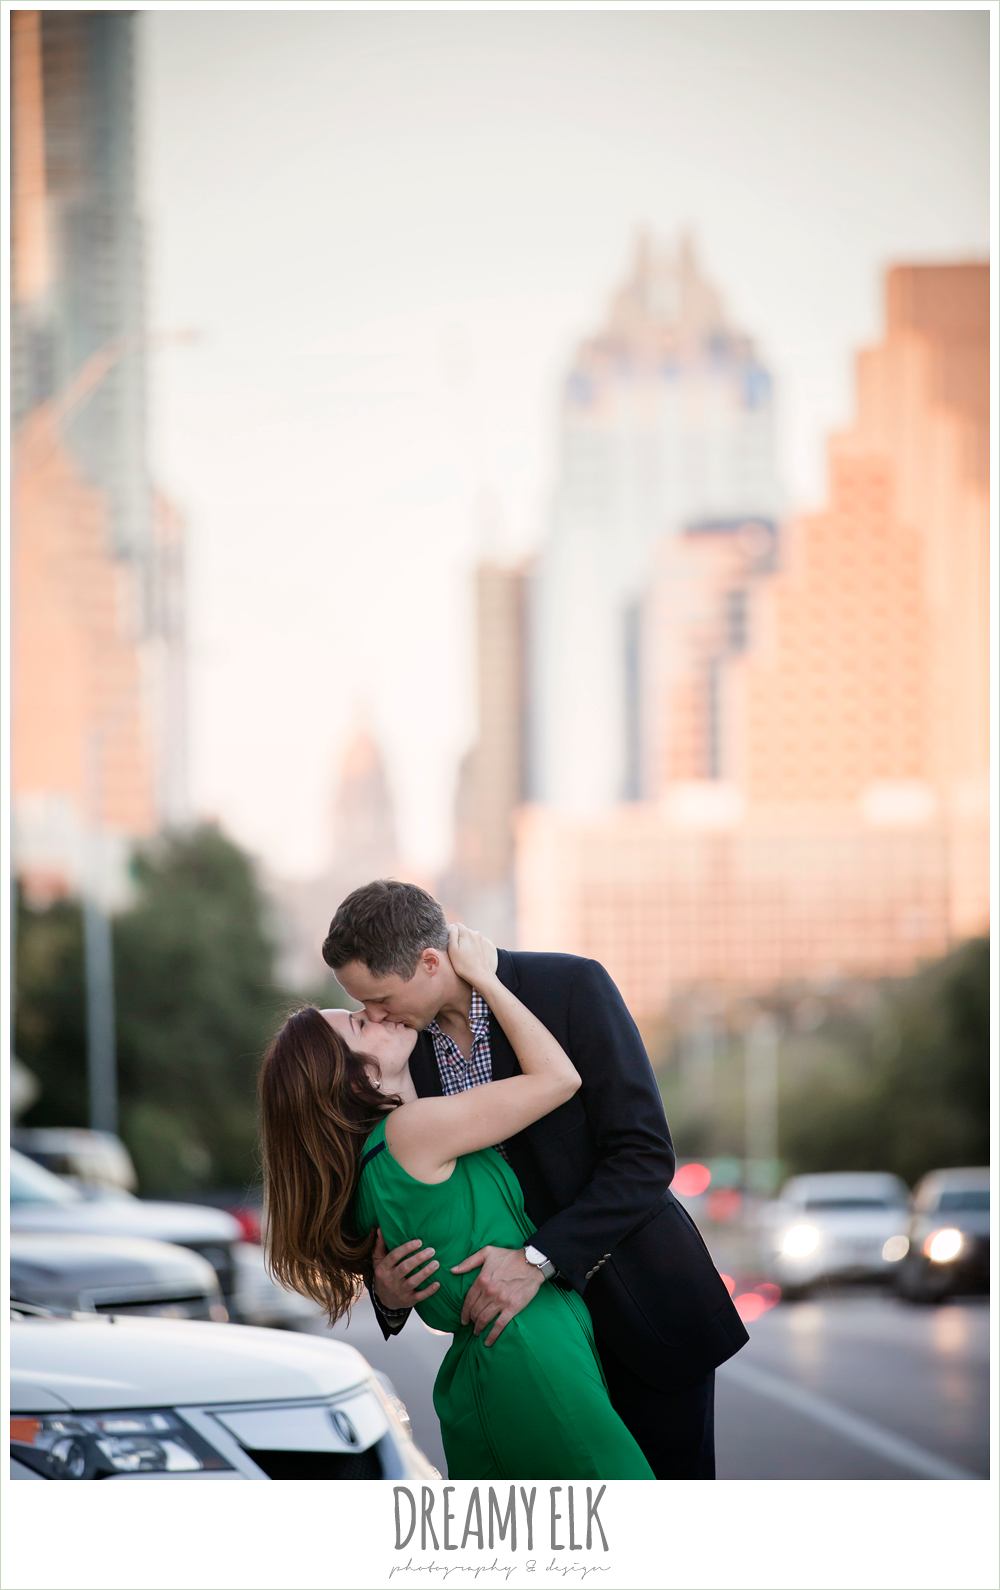 capitol building, downtown austin texas engagement photo, urban engagement photo {dreamy elk photography and design}